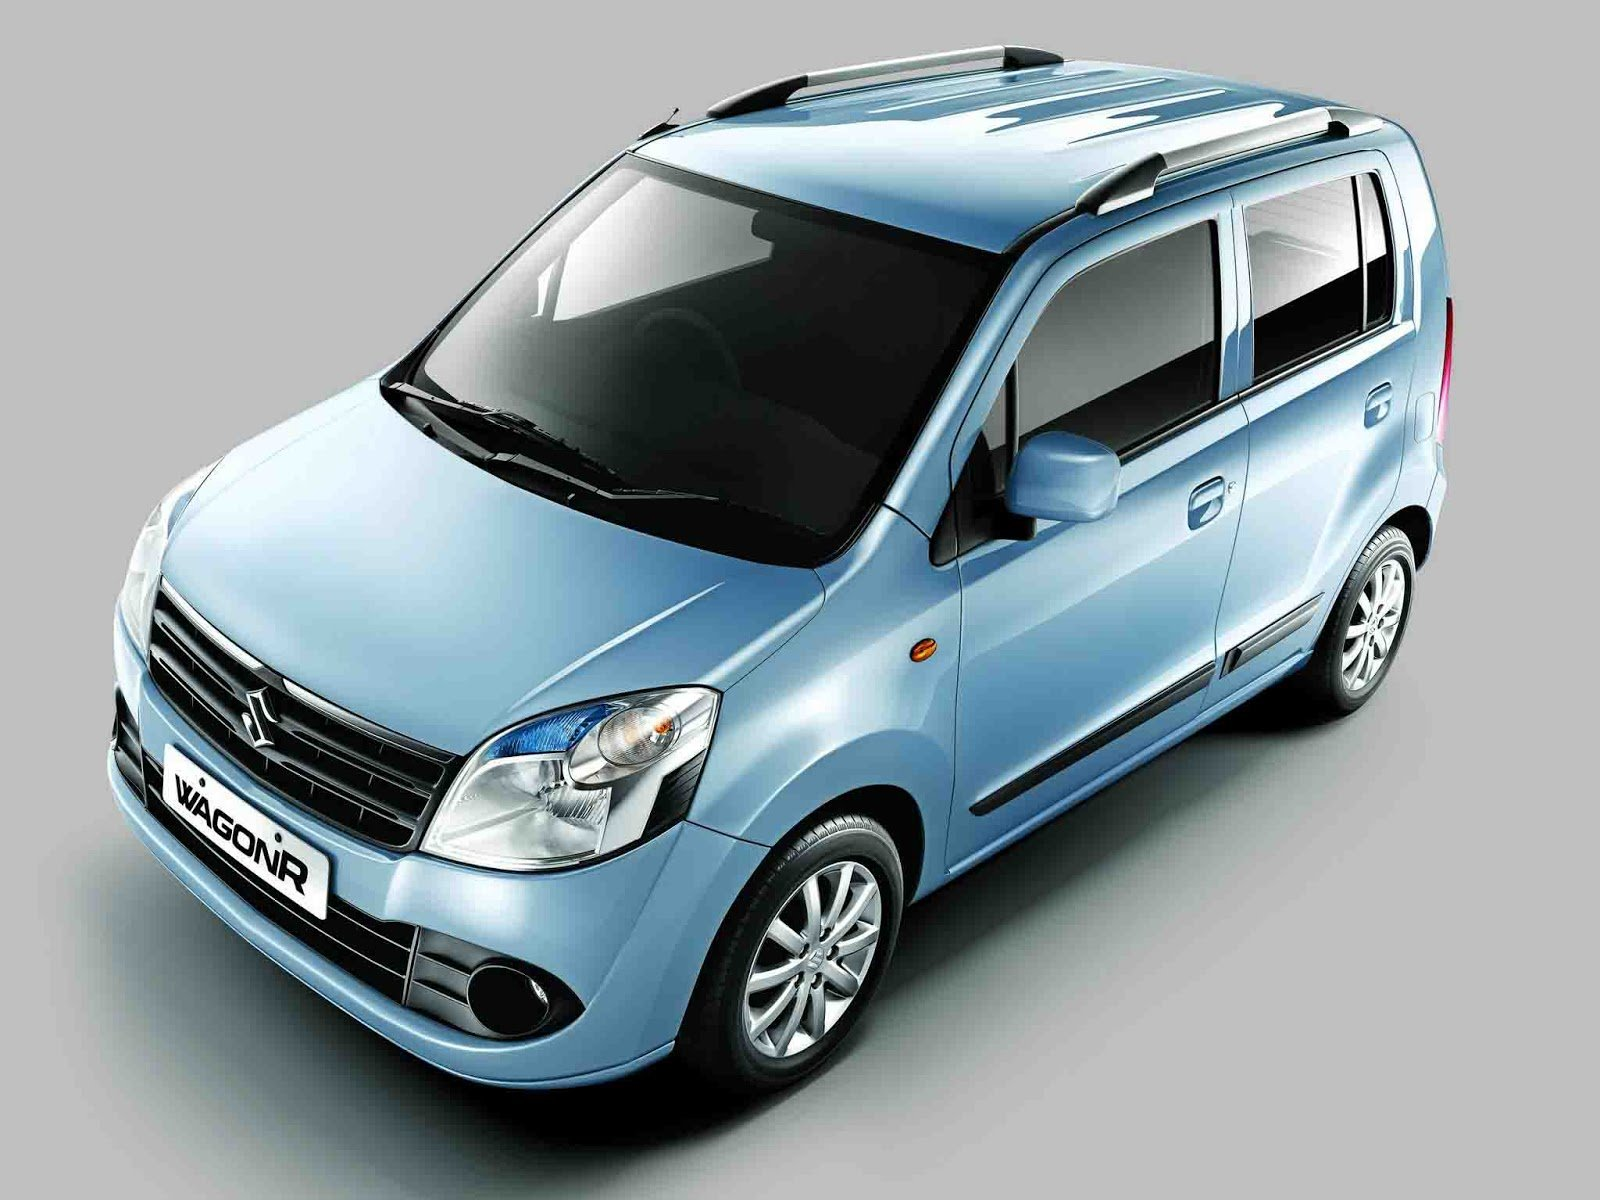 Latest Car And Bike Maruti Suzuki Wagon R 1 Car Photos And Free Download